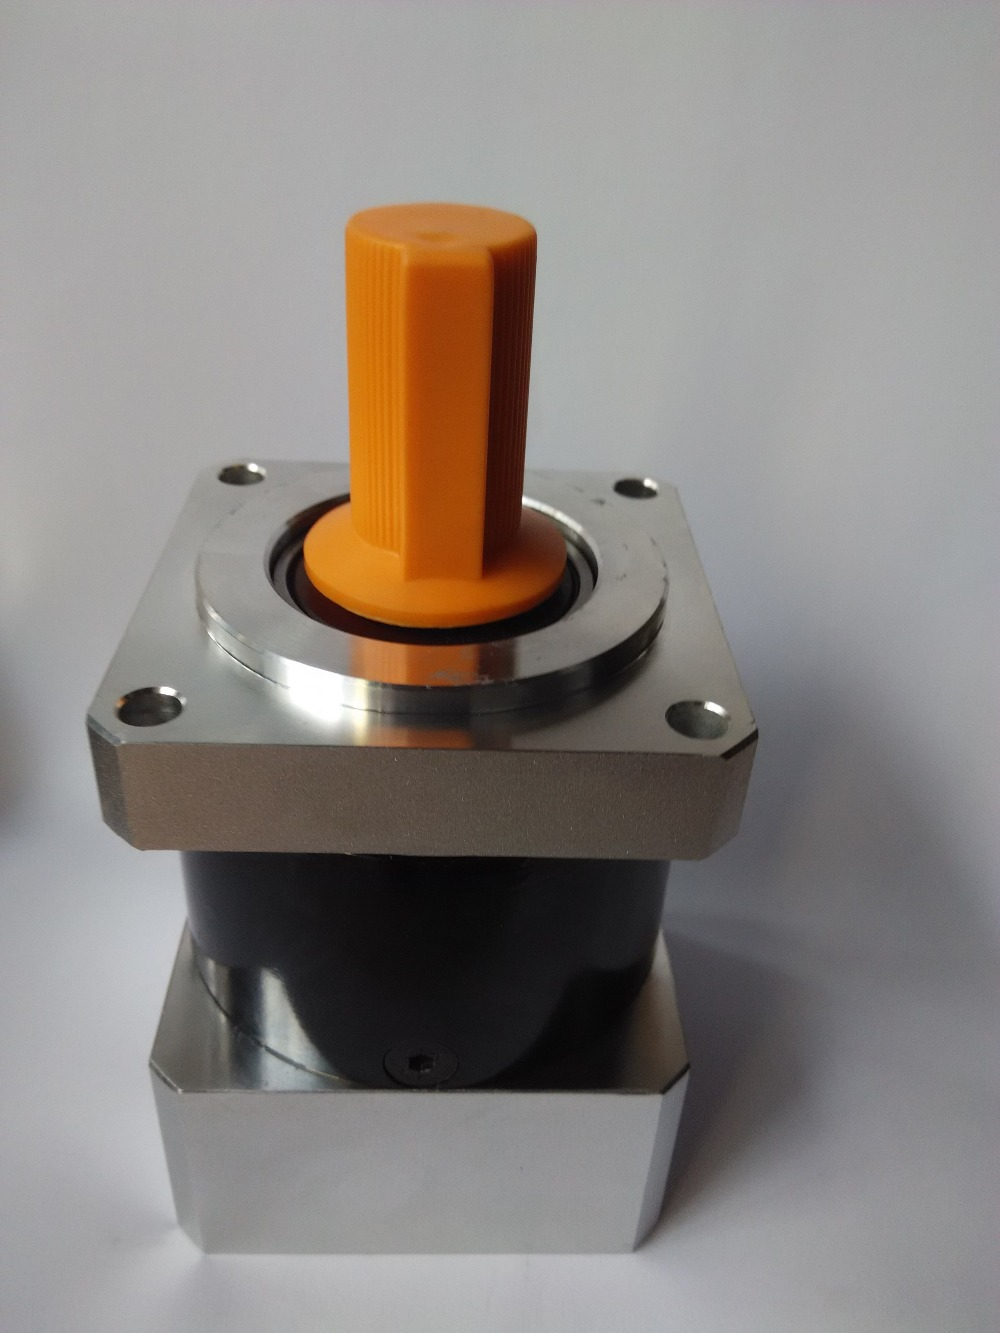 5 pieces of PLF80-10K spur reducer planetary gearbox flange 80*80mm size ratio 10:1 send to Estonia electron ionization relevance to planetary atmospheres